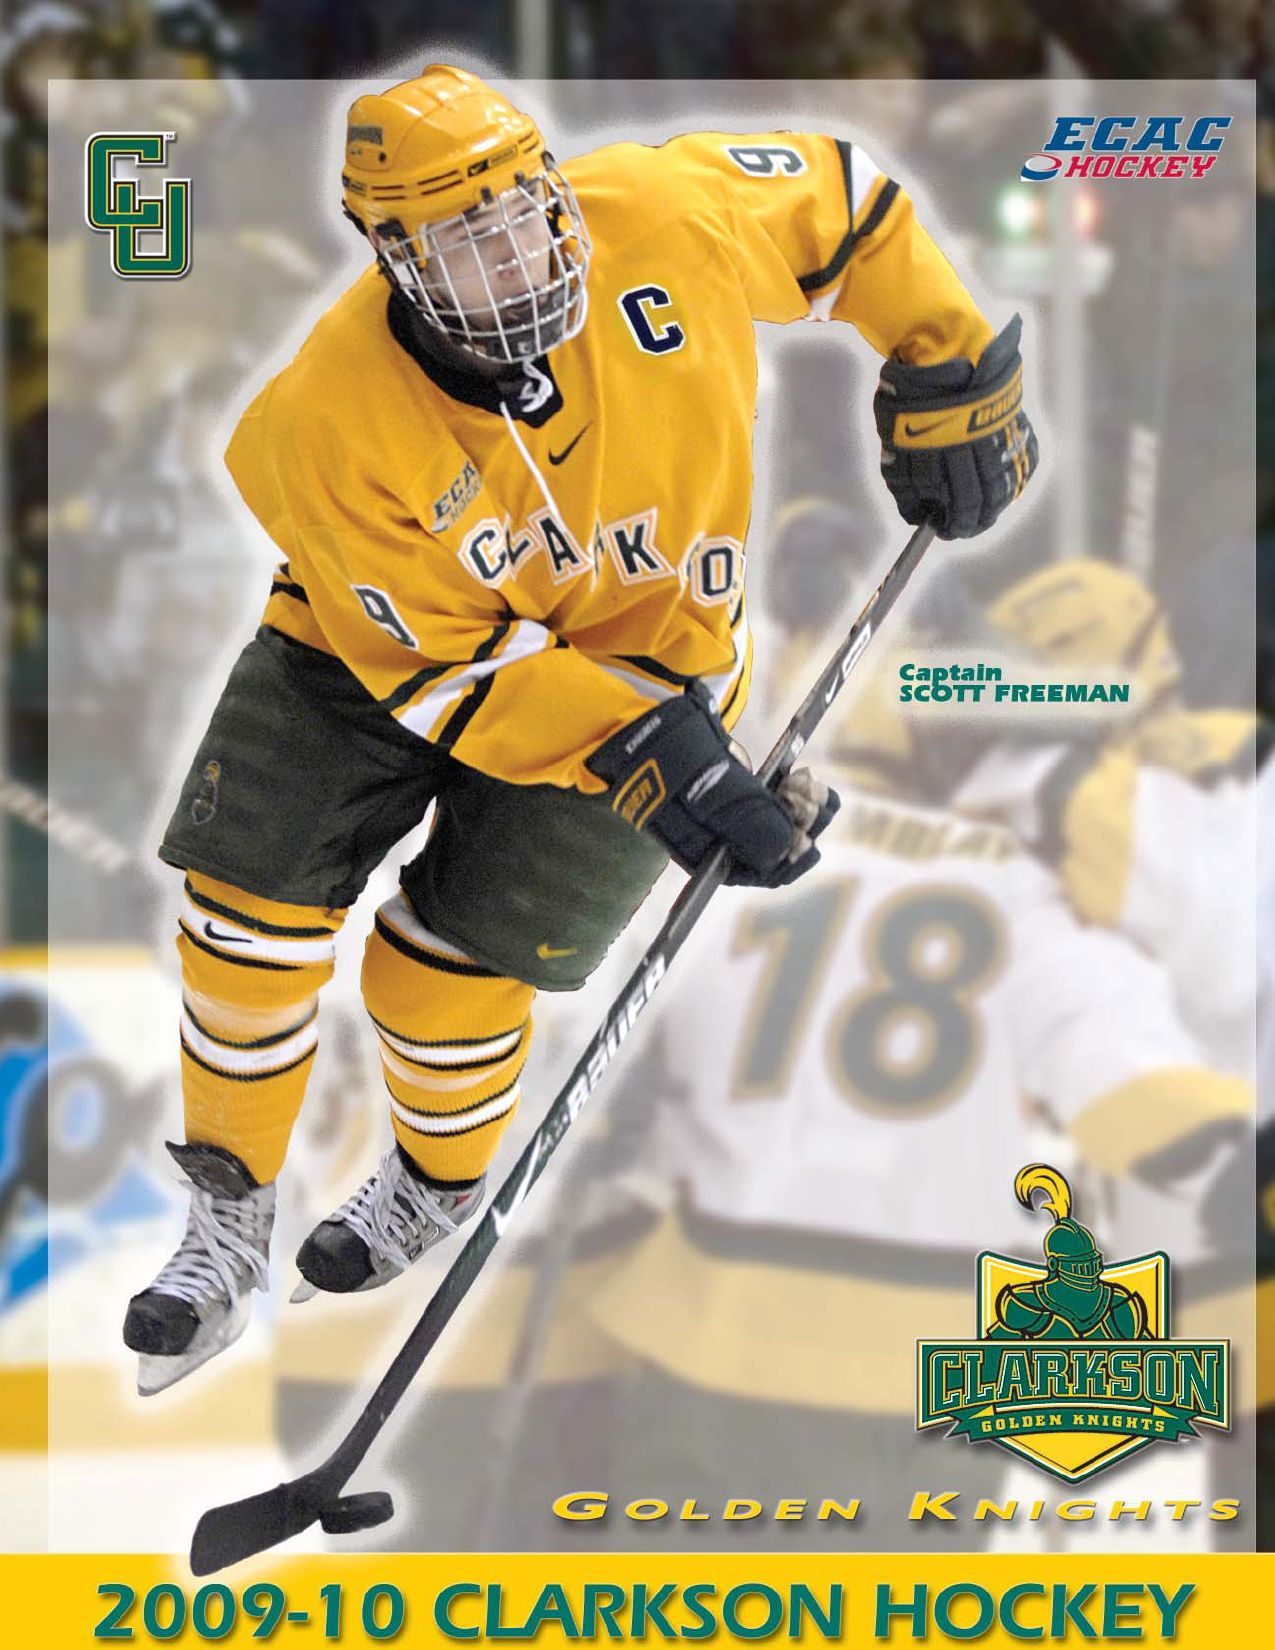 ad822740479 2009-10 Clarkson Men s Hockey Media Guide by Gary Mikel - issuu